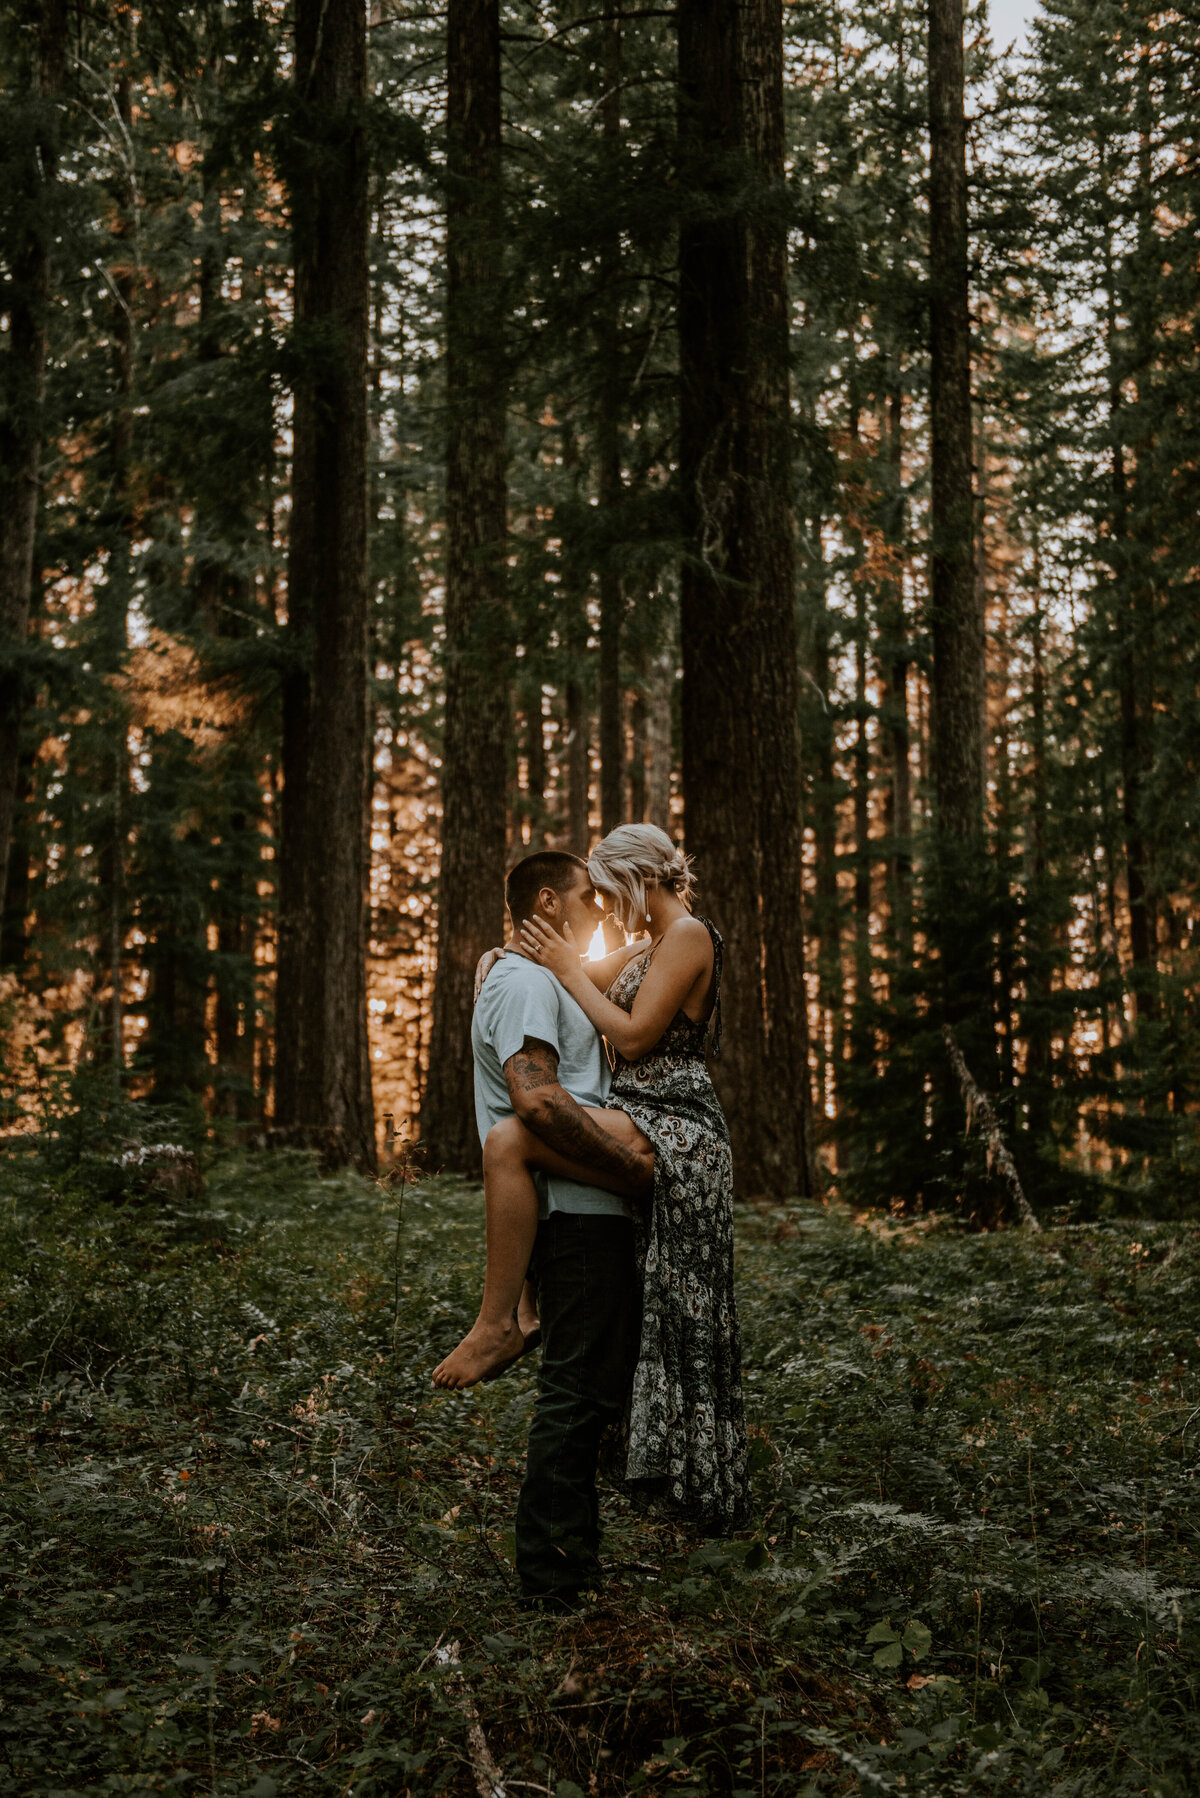 sahalie-falls-oregon-engagement-elopement-photographer-central-waterfall-bend-forest-old-growth-6847